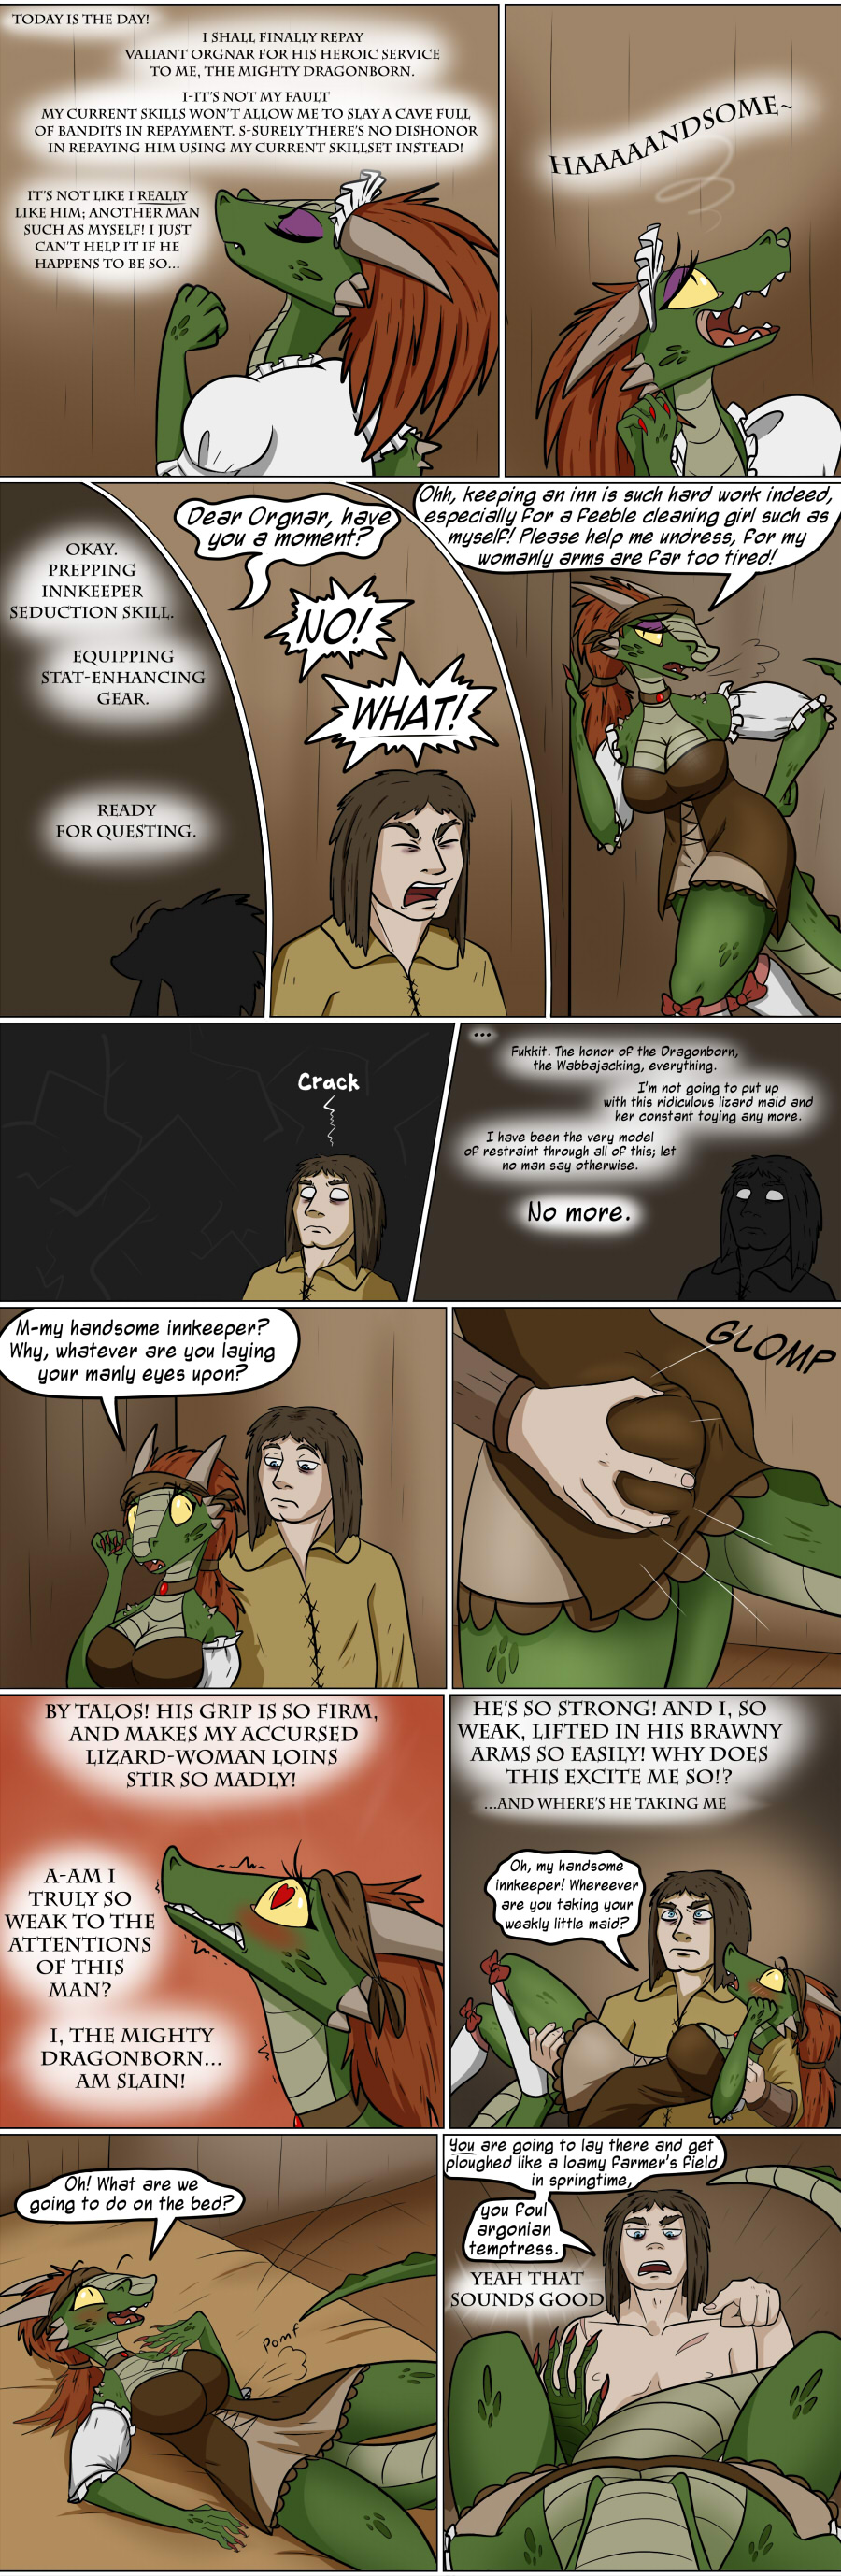 argonian breasts brown_hair butt butt_grab cleavage clothed clothing comic dialogue english_text female hair hand_on_butt human lifts-her-tail male male/female mammal mind_control red_hair scalie text the_elder_scrolls valsalia video_games yellow_eyes